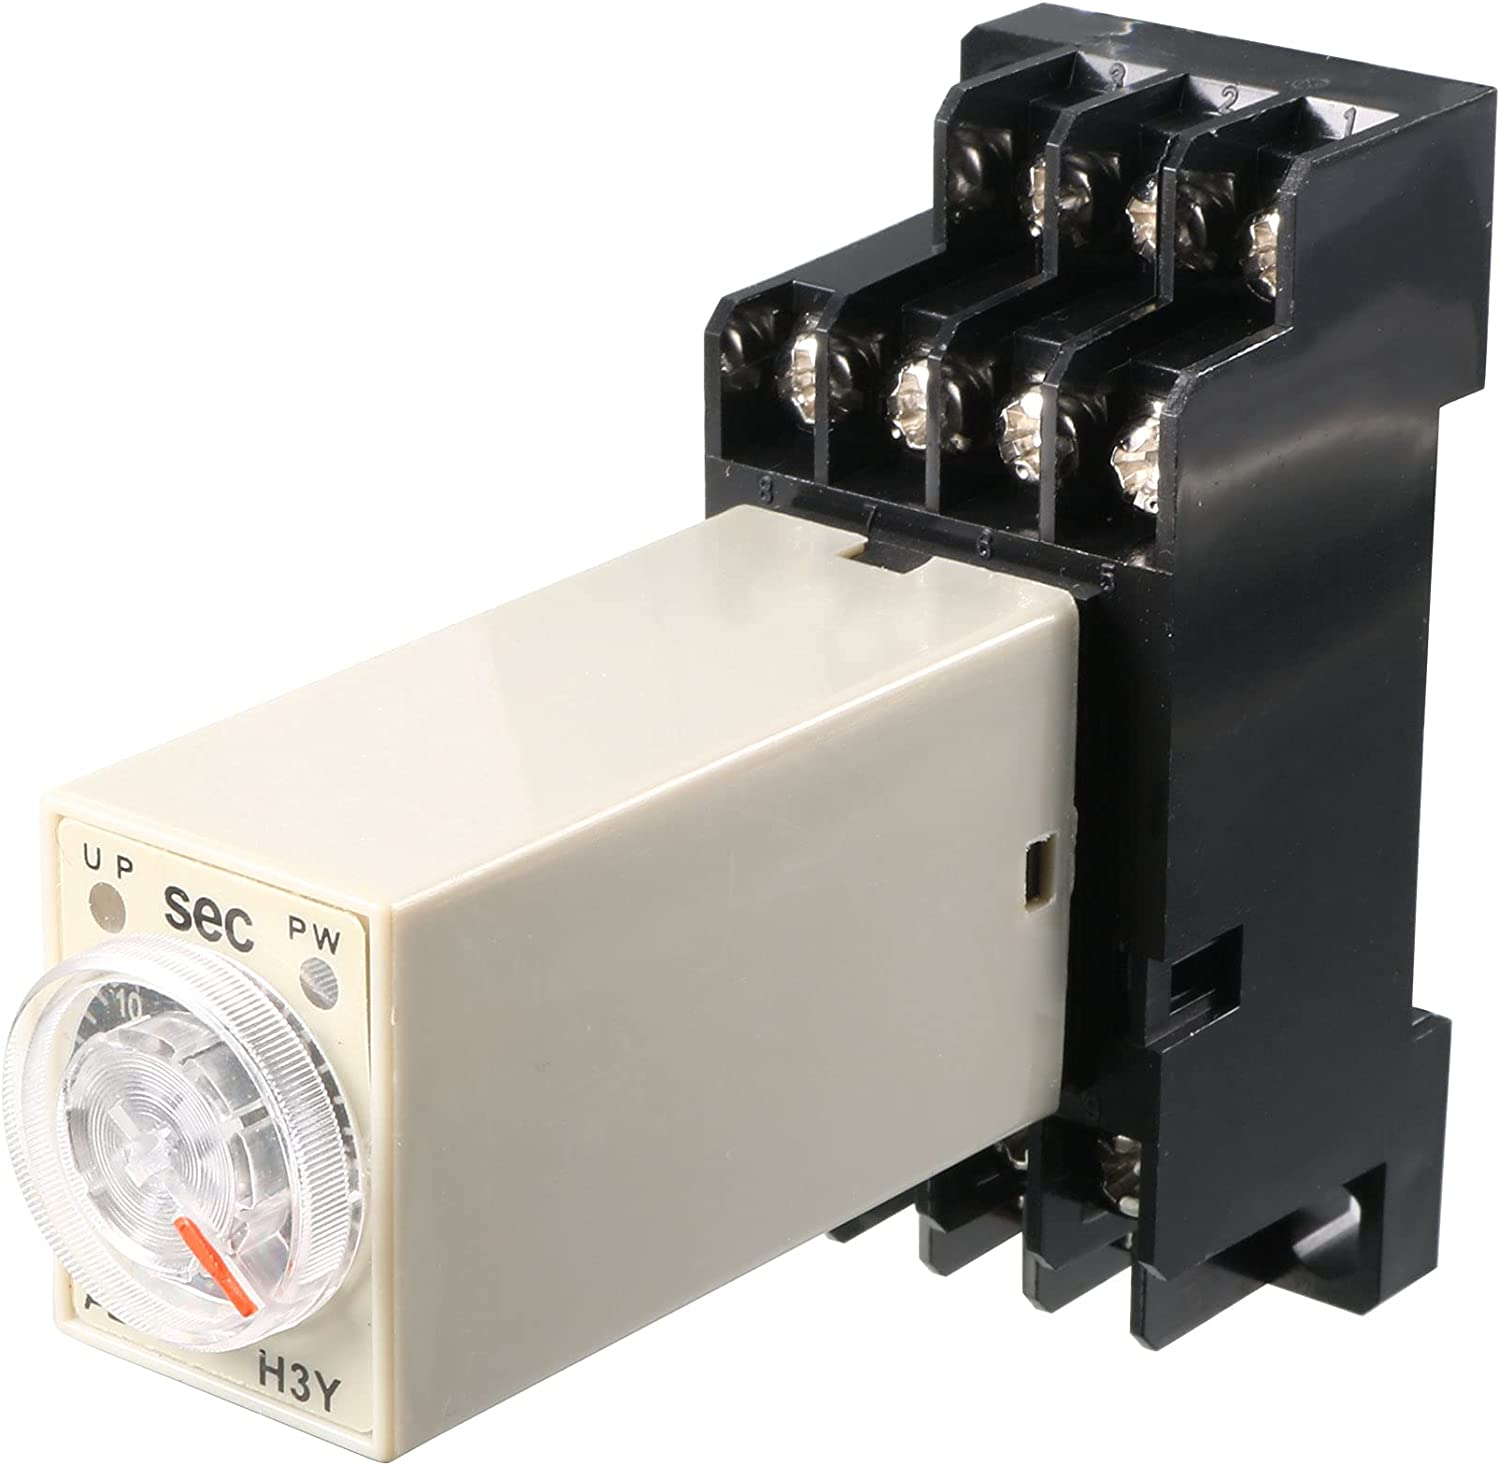 uxcell DC 24V Max 44% OFF H3Y-4 0-30S 4PDT 14 Power Pins safety Delay on Time Relay